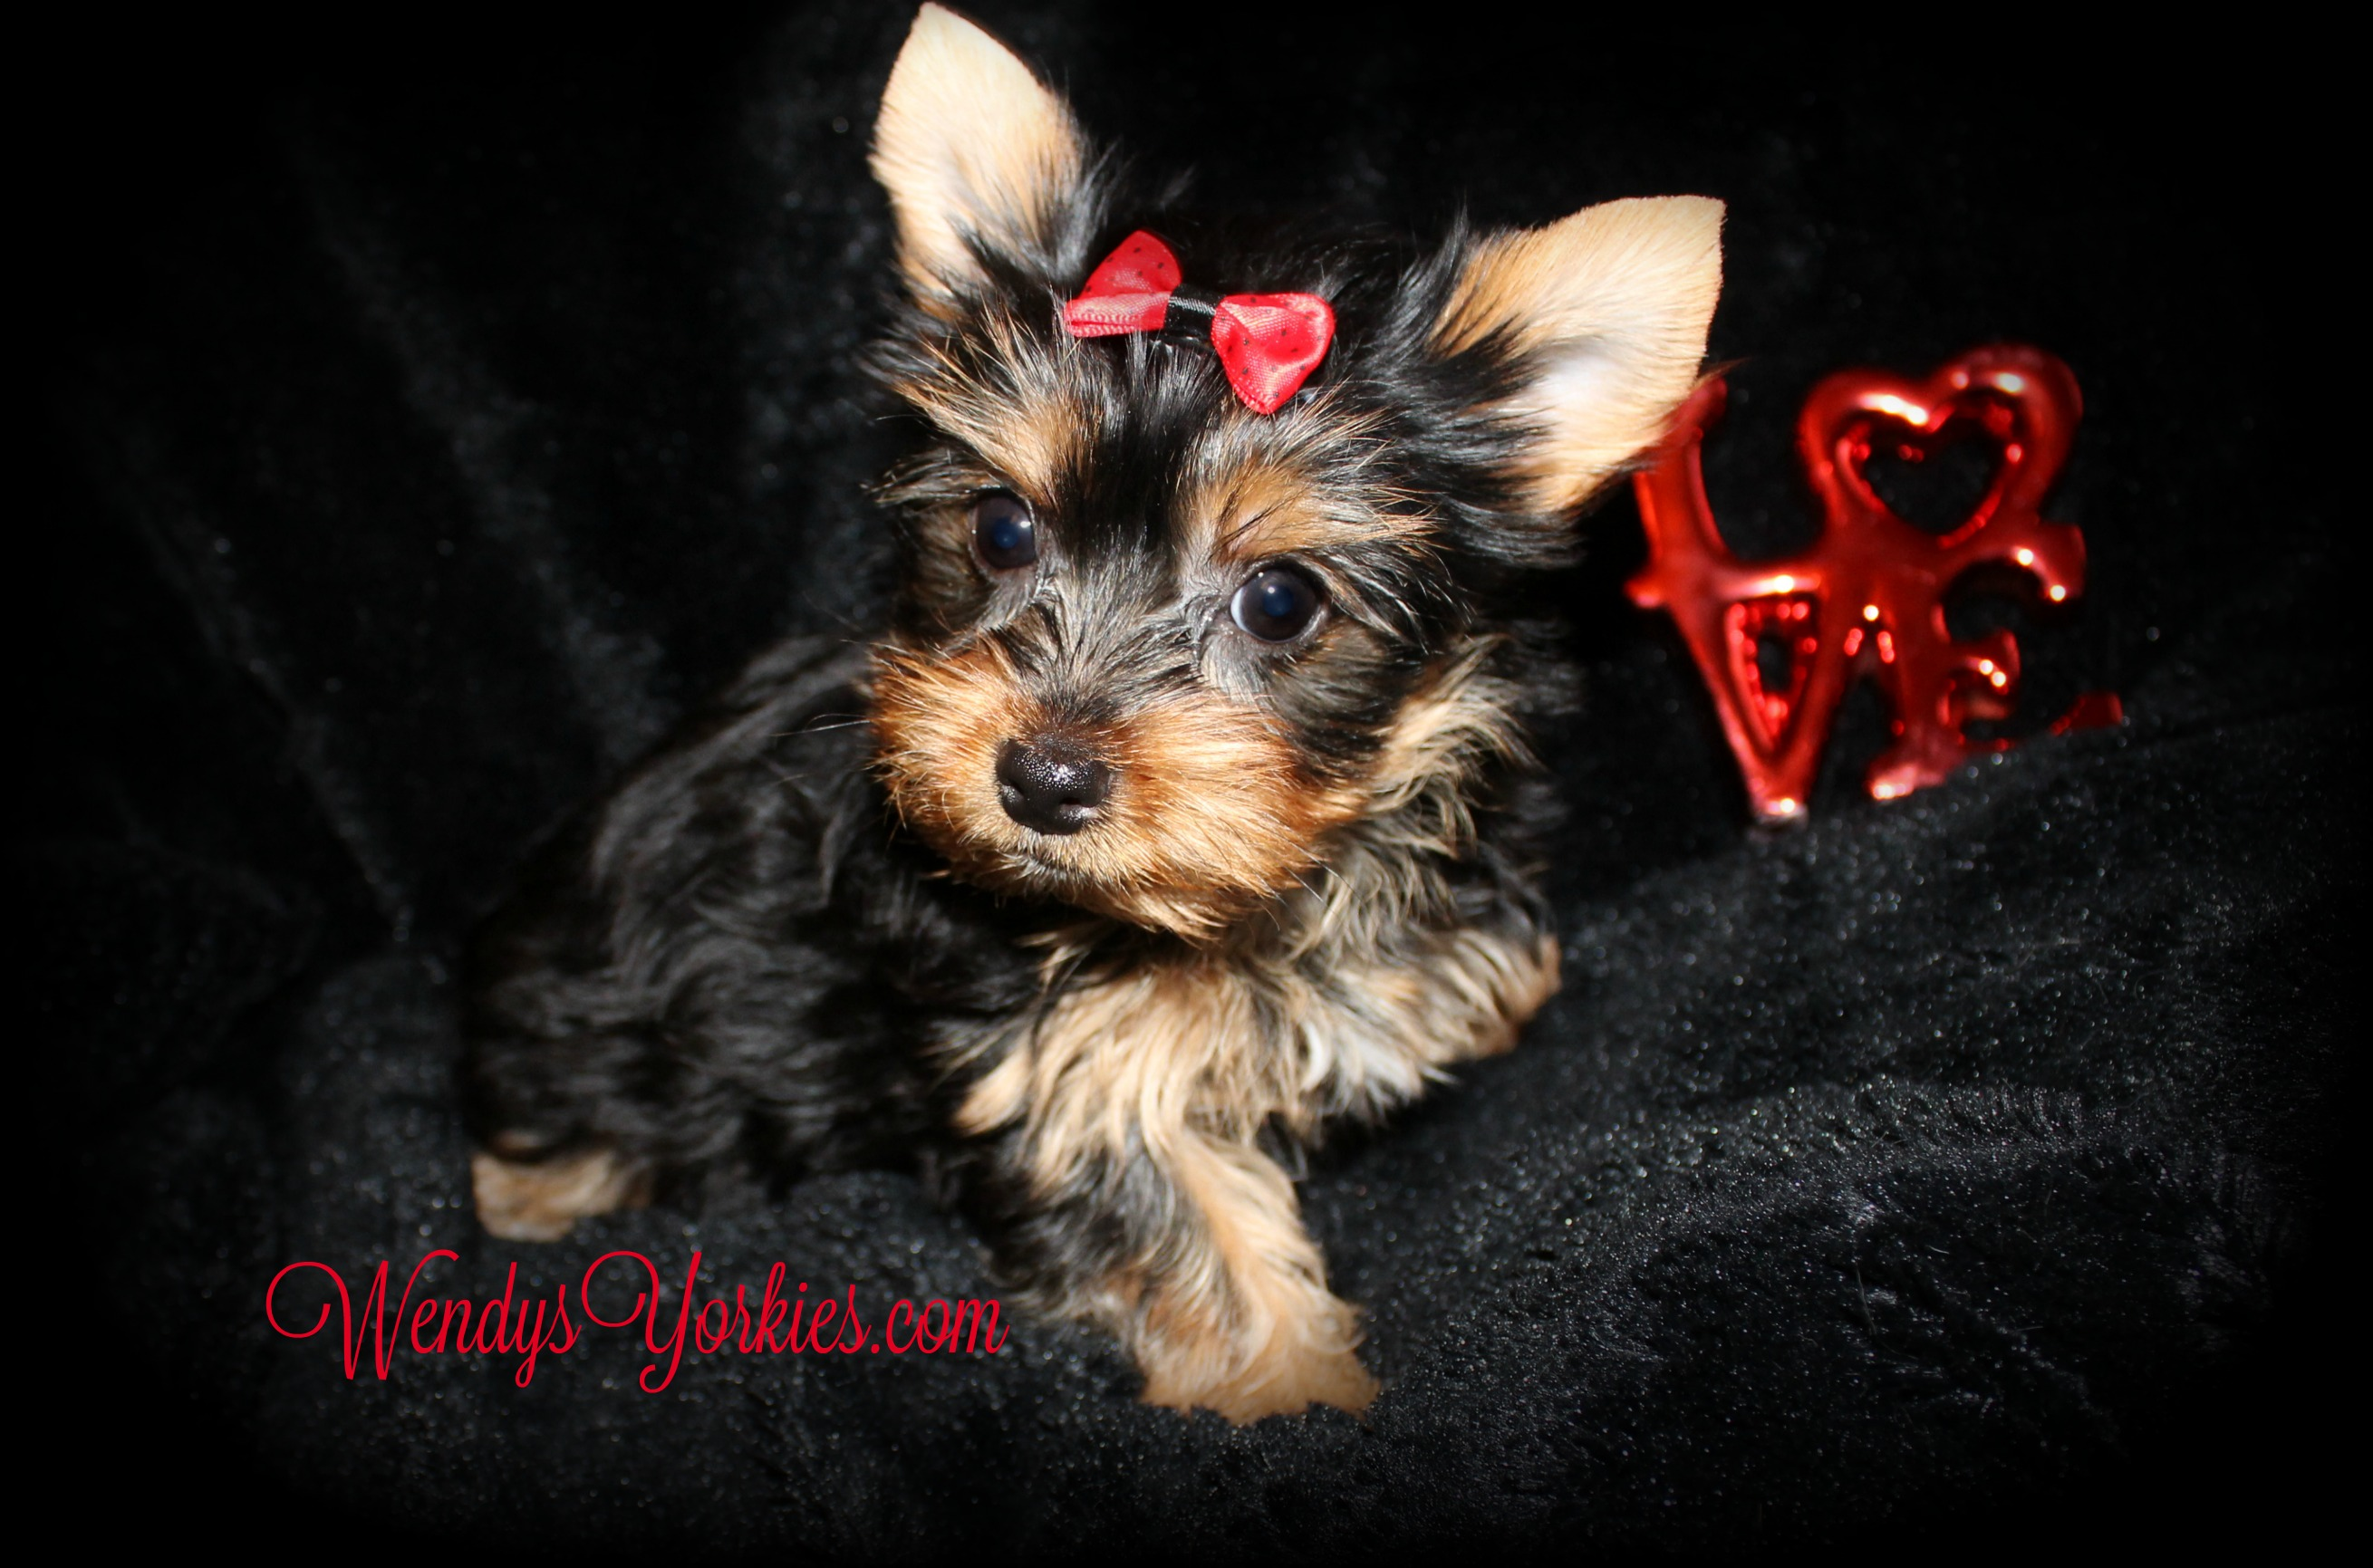 Yorkie puppies for sale in Texas, WendysYorkies.com, Anna M1